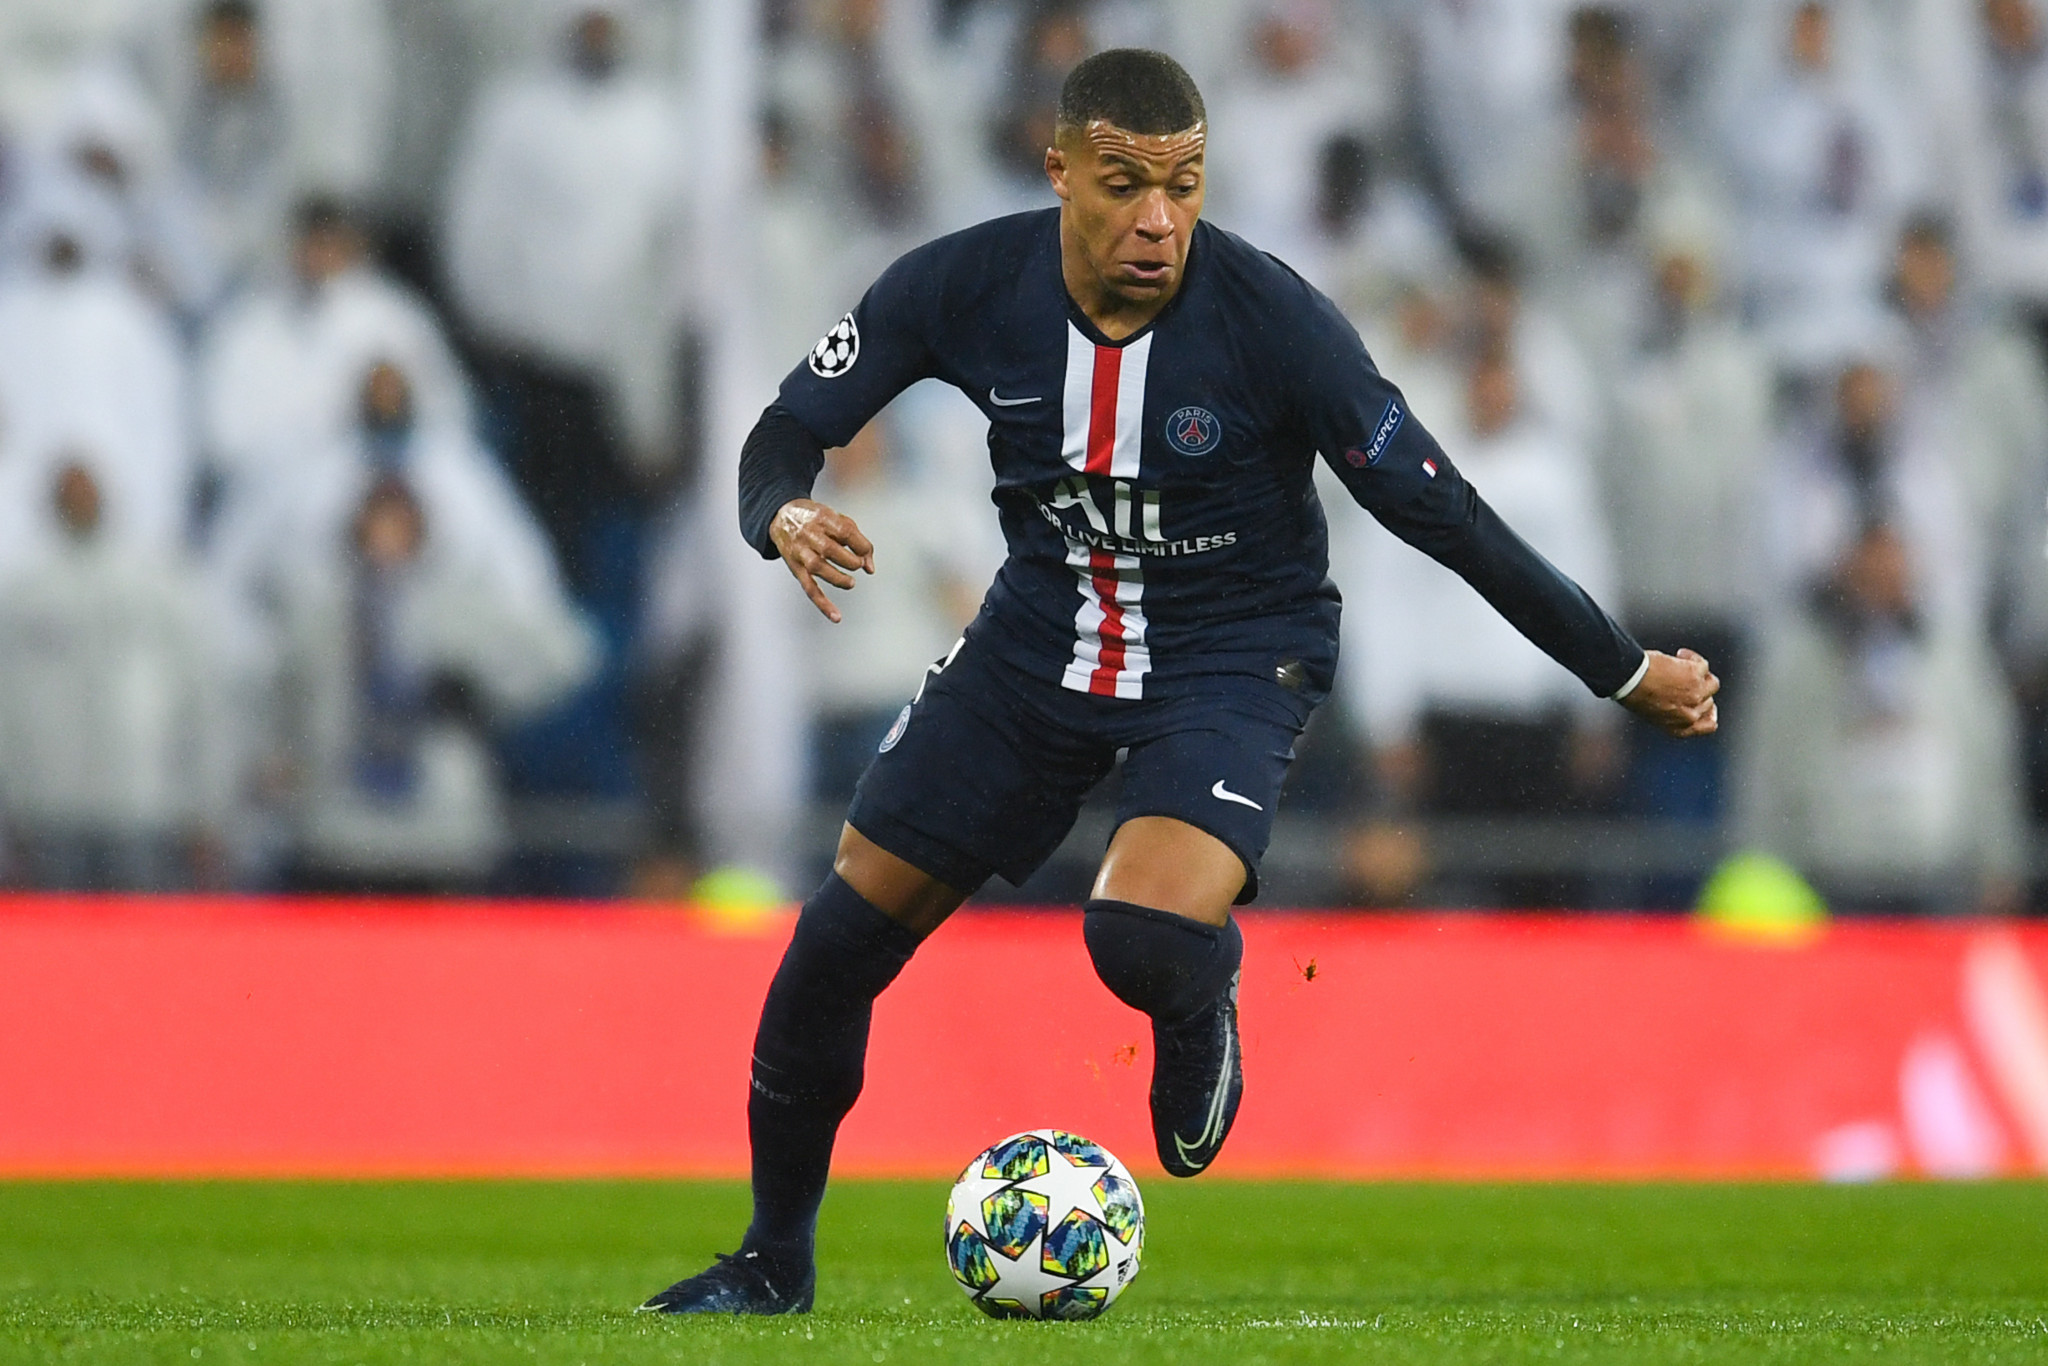 Mbappé to star on FIFA 22 cover as new technology looks to make game more realistic